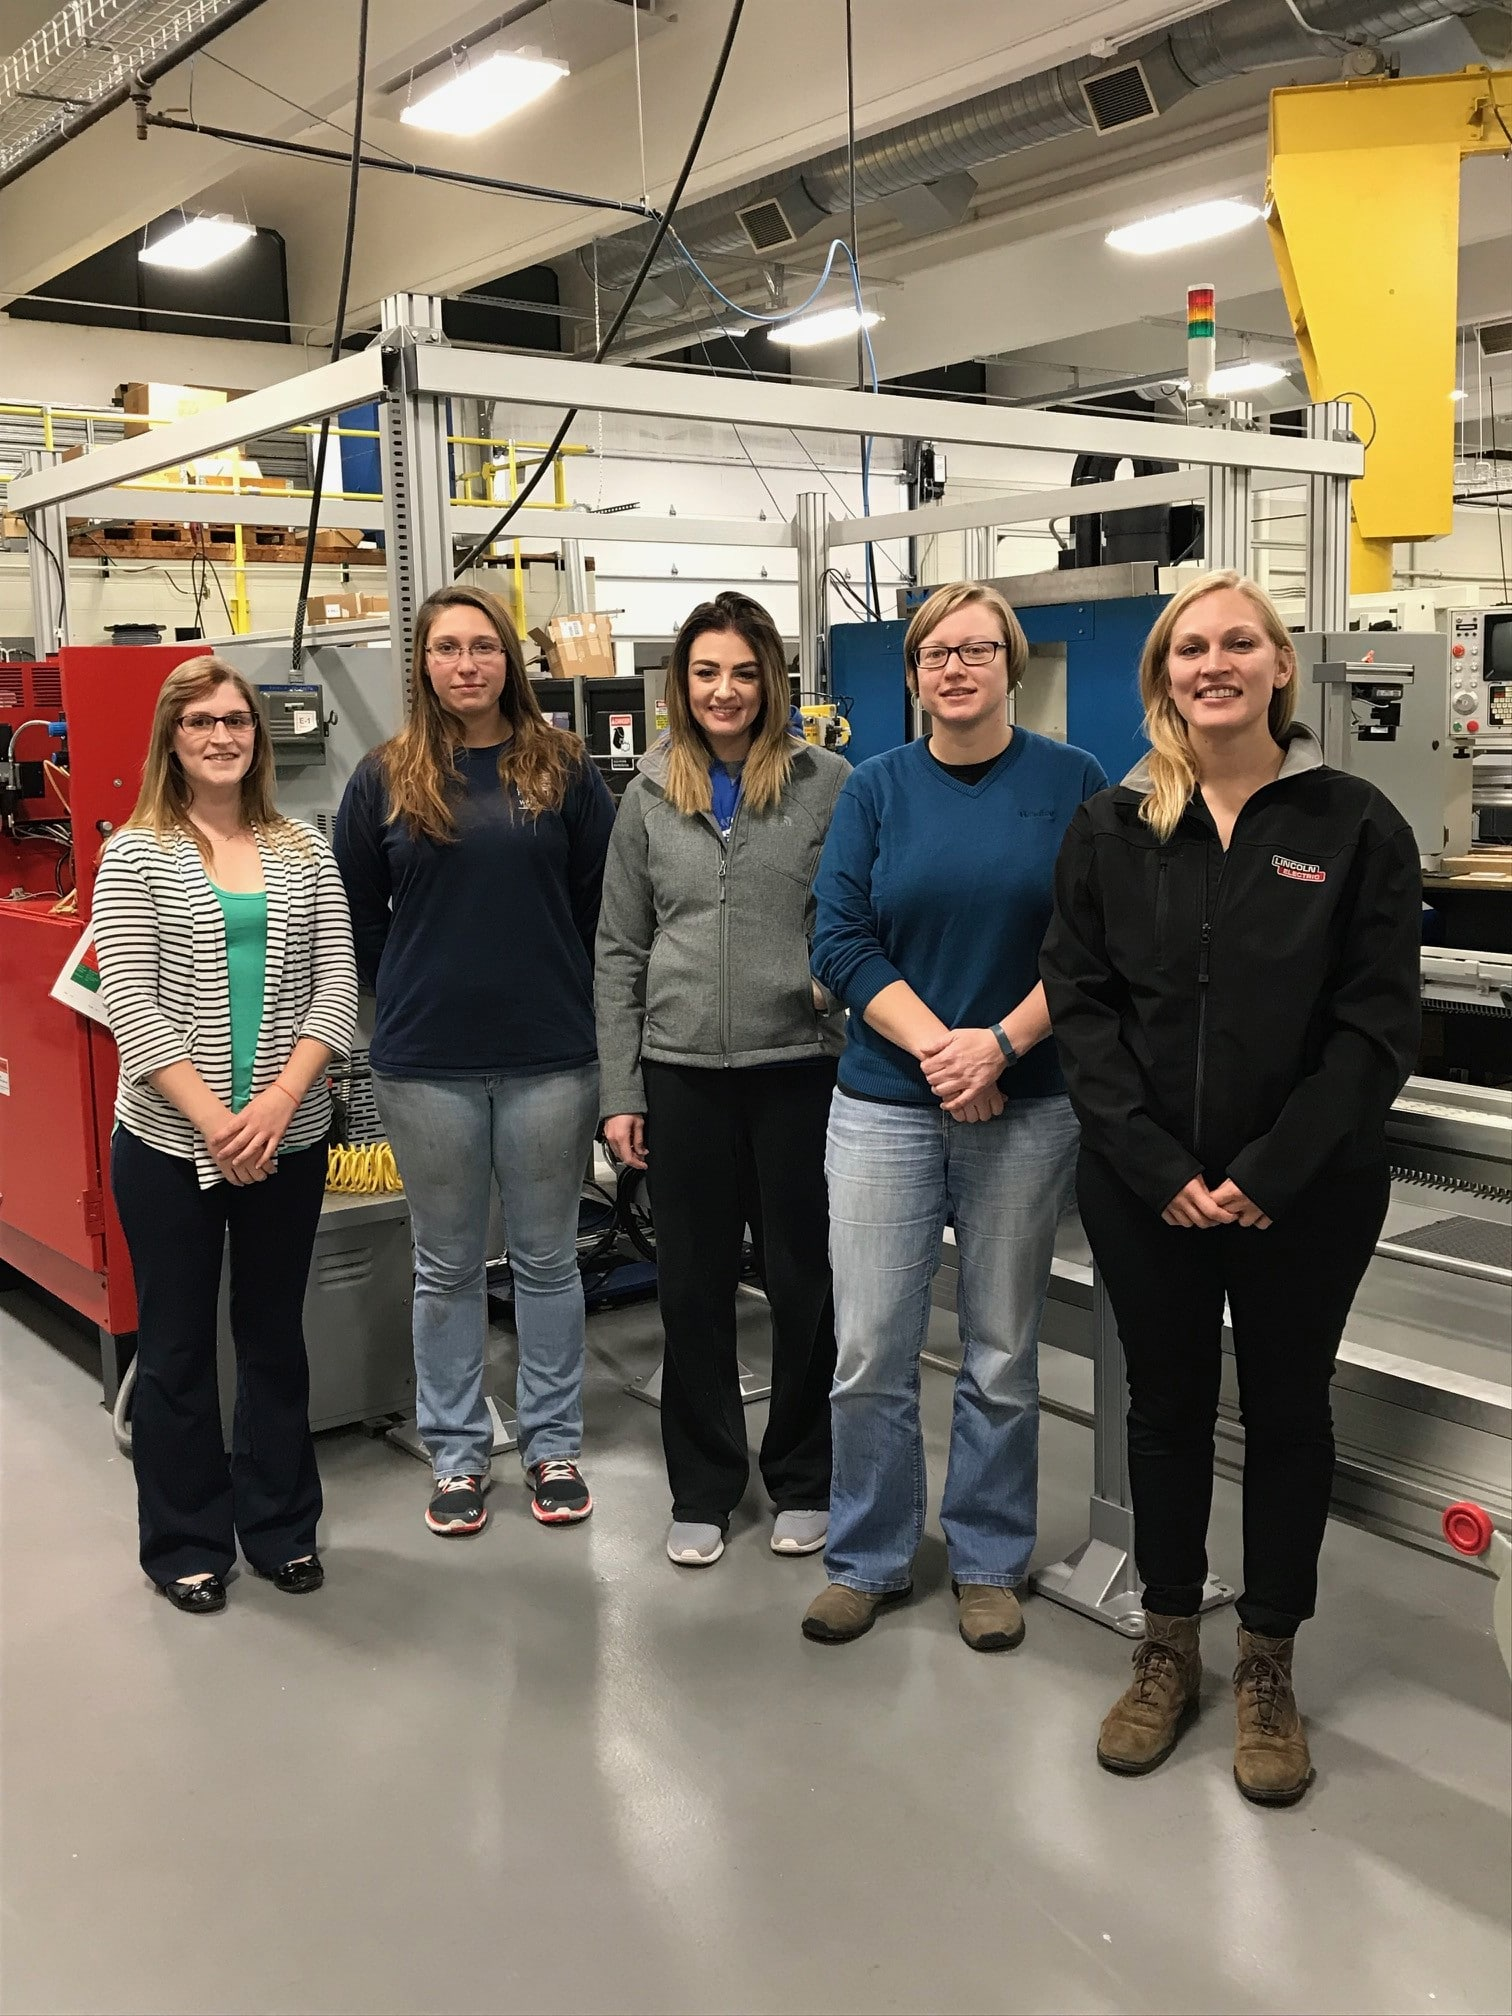 group of women stand in manufacturing area